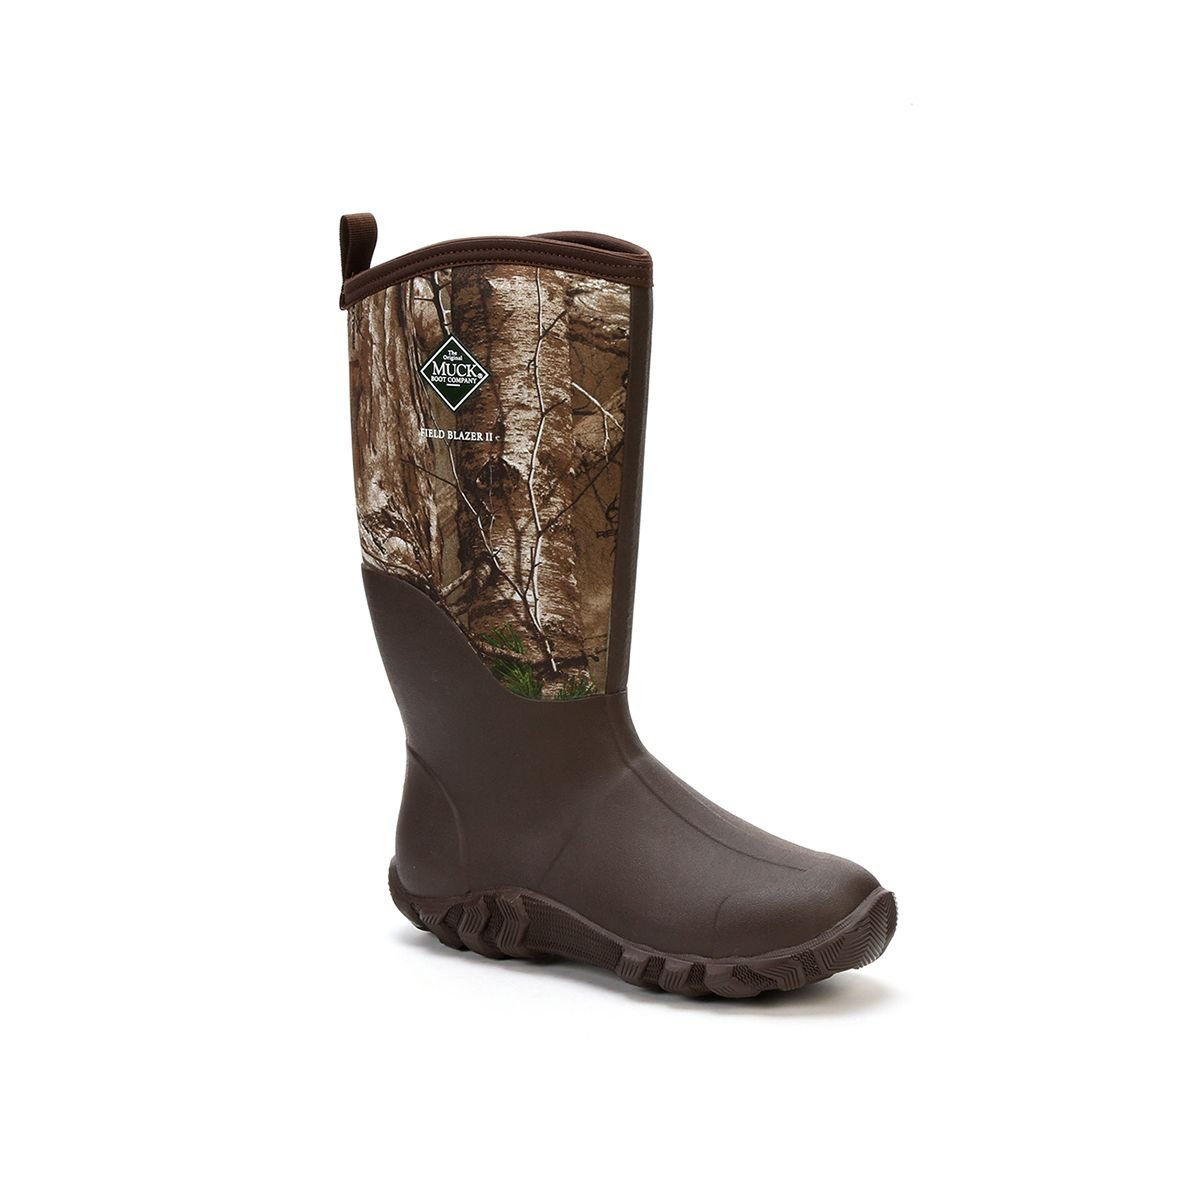 Muck Boot Men's Feildblazer II Knee High Boot, Brown, Realtree Xtra, 13 D(M) US by Muck Boot